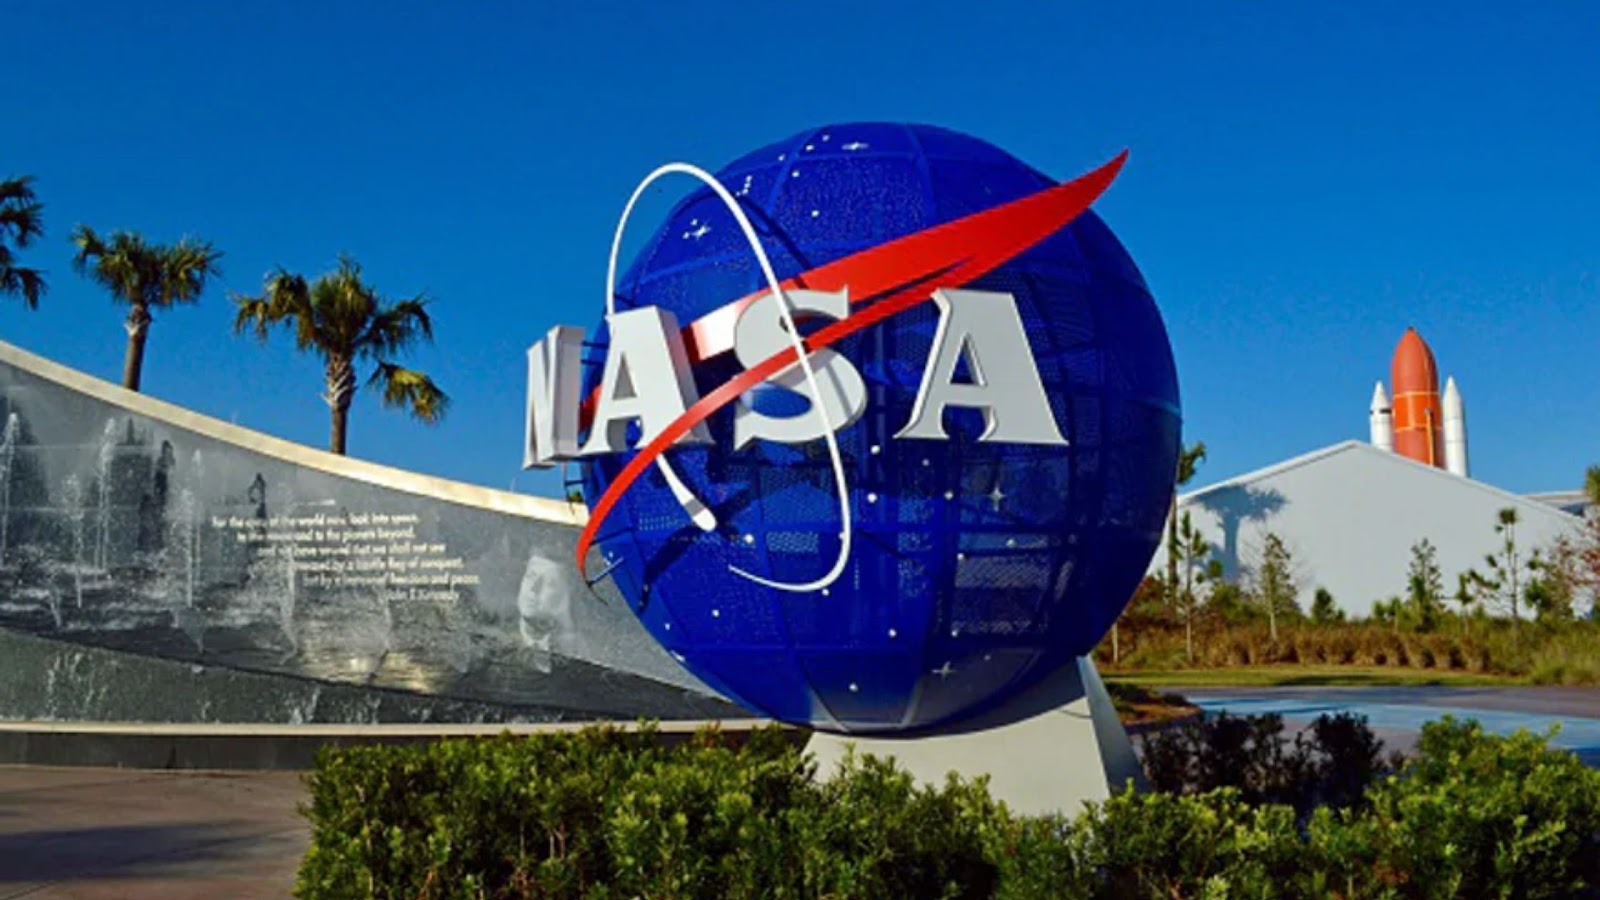 NASA Technology for Cloud Computing In Space